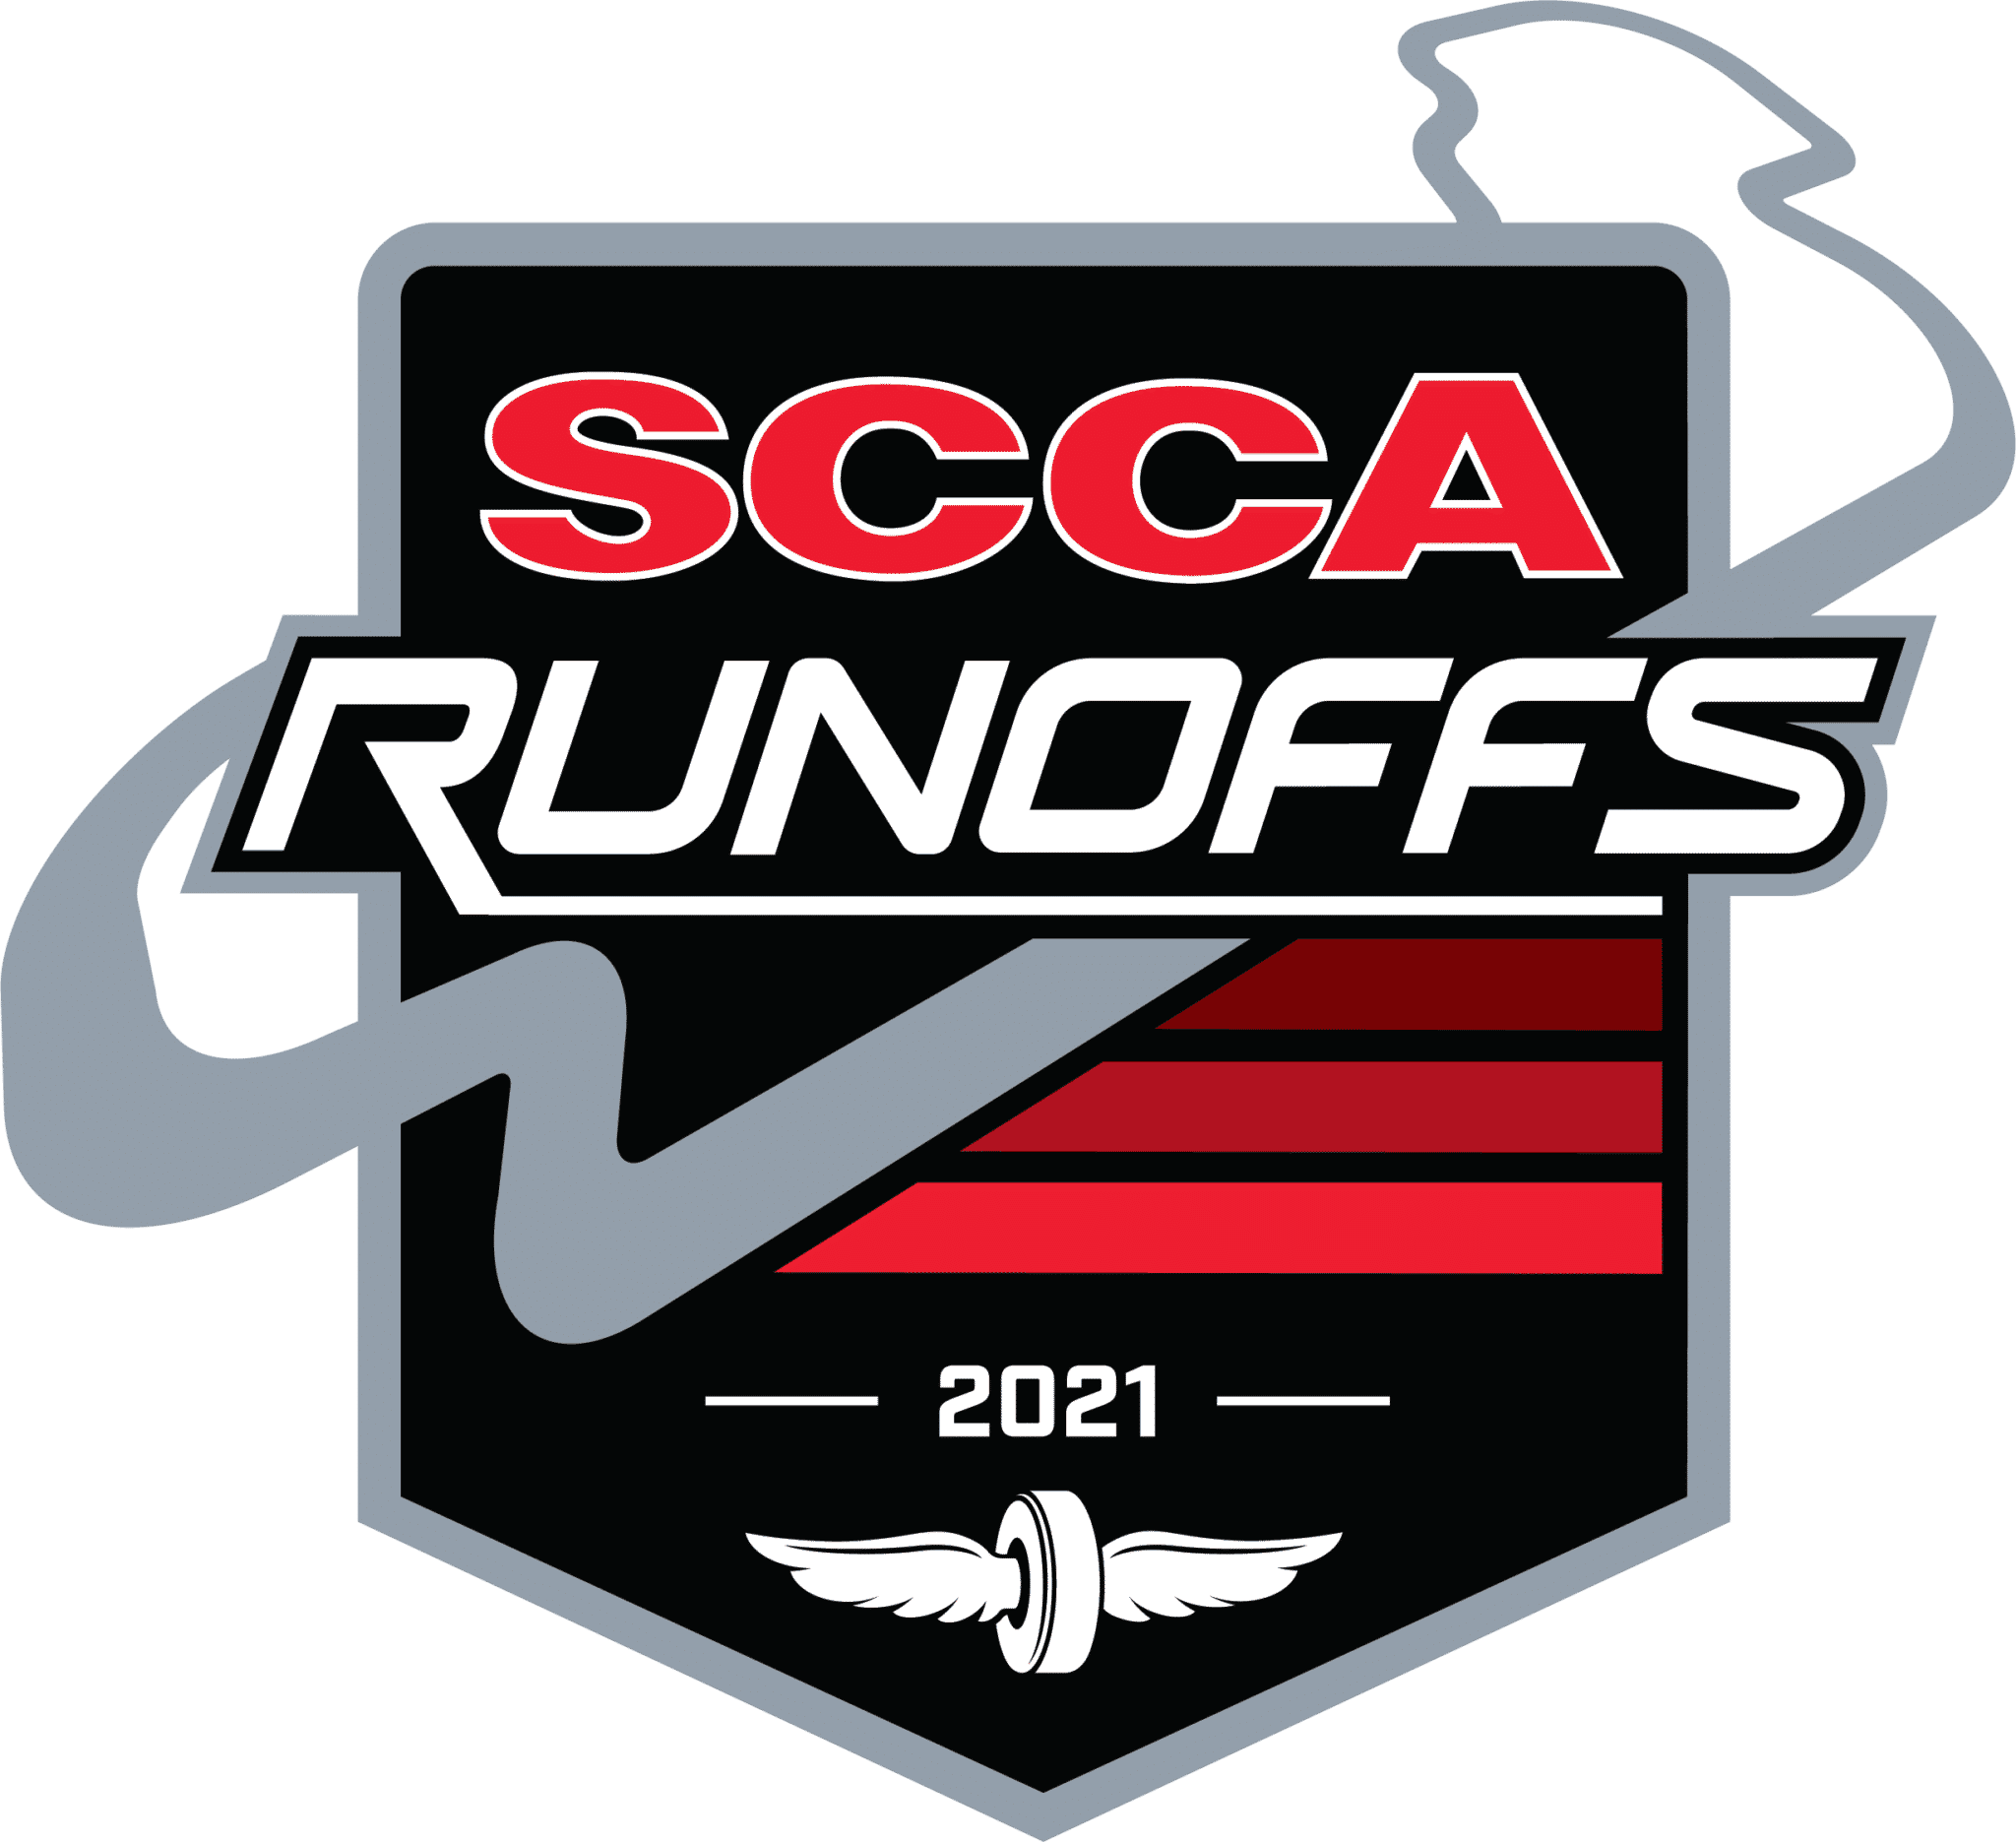 36 NER Drivers Head to Indy for the 2021 Runoffs